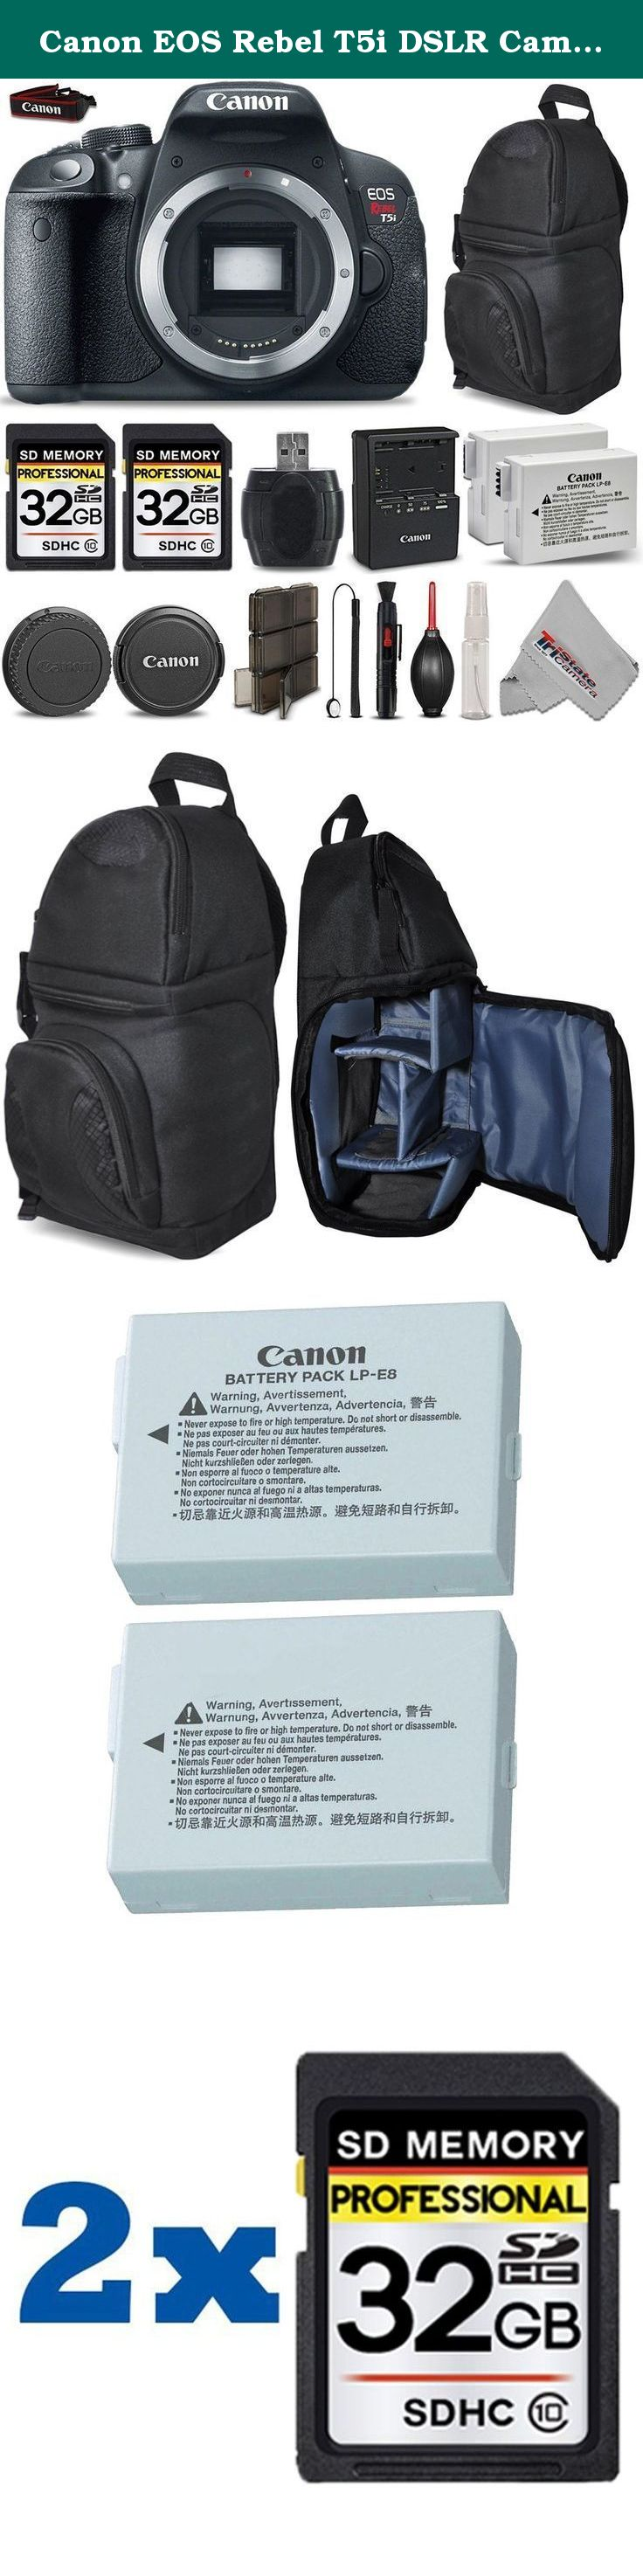 Canon Eos Rebel T5i Dslr Camera Full Hd 1080p 18mp Cmos Body Only 1200d Kit 18 55mm Iii Non Is 64gb Storage Uv Filter Backup Battery Memory Card Case Cleaning